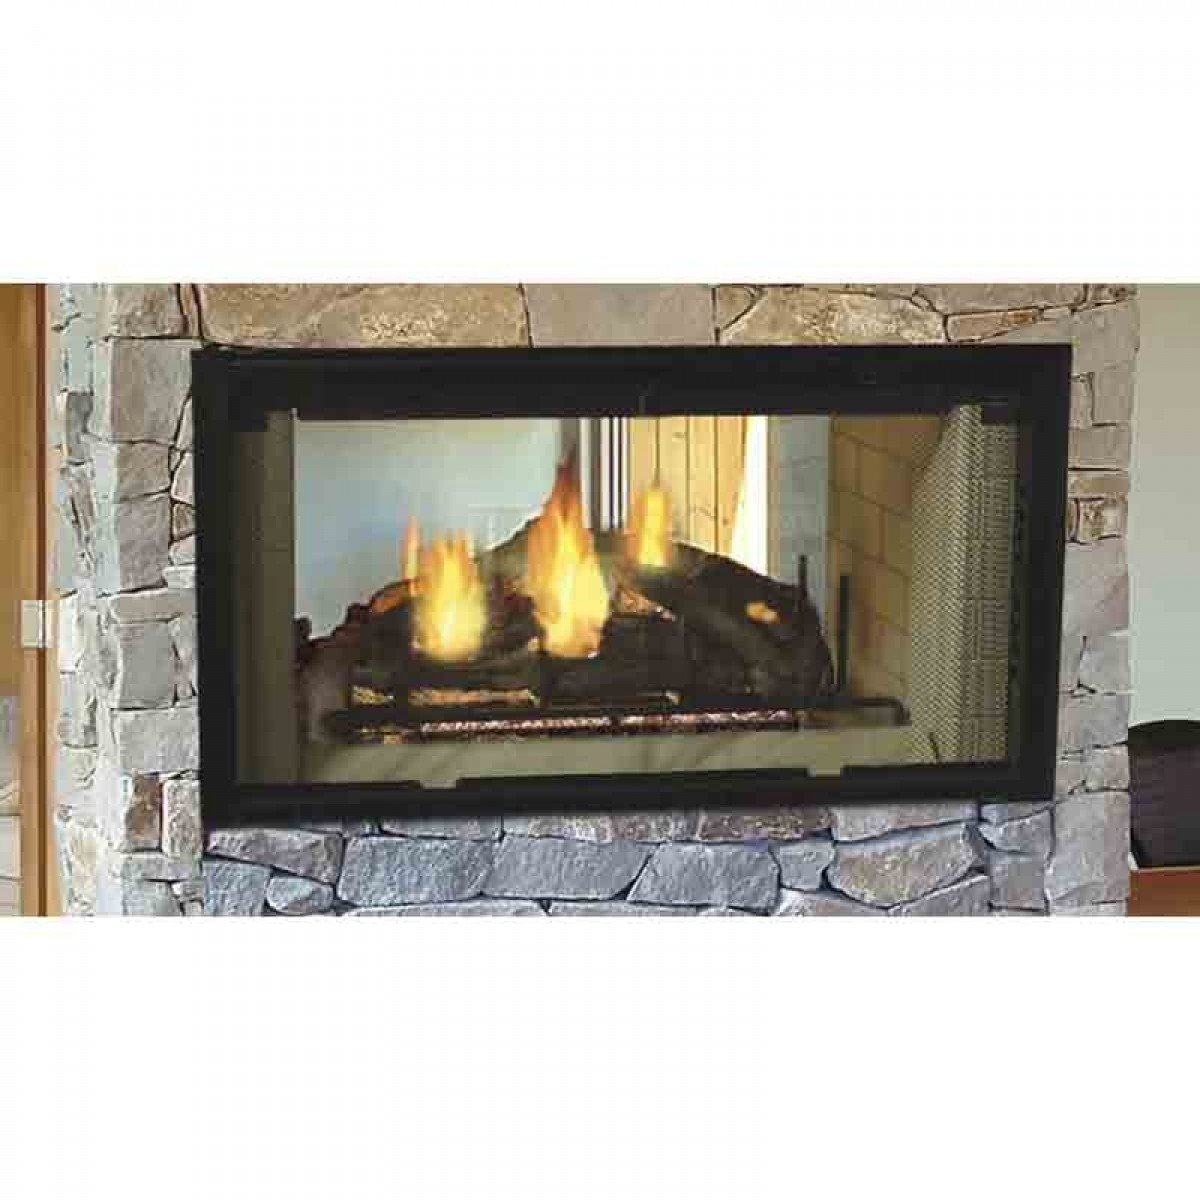 Majestic designer see through wood burning fireplace for See thru fireplaces